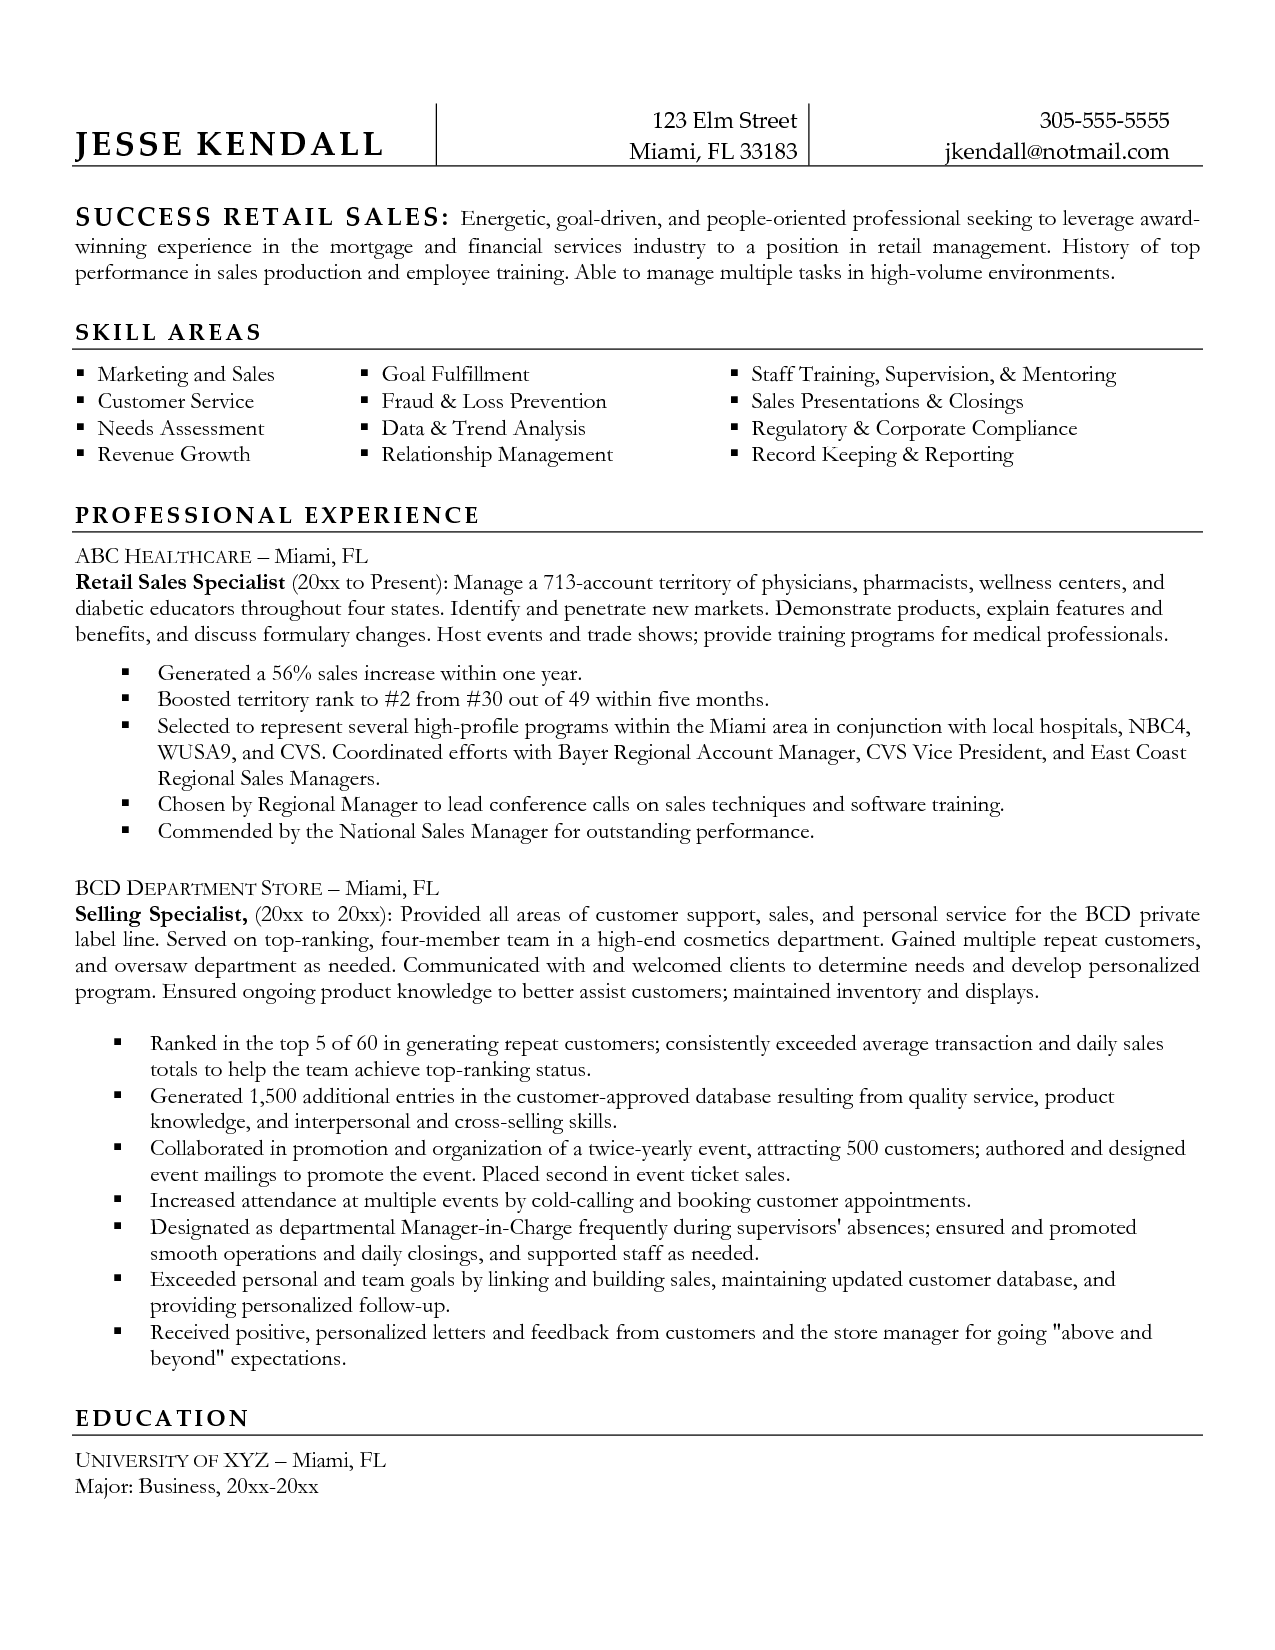 magazine sales resume examples - Furniture Sales Resume Sample